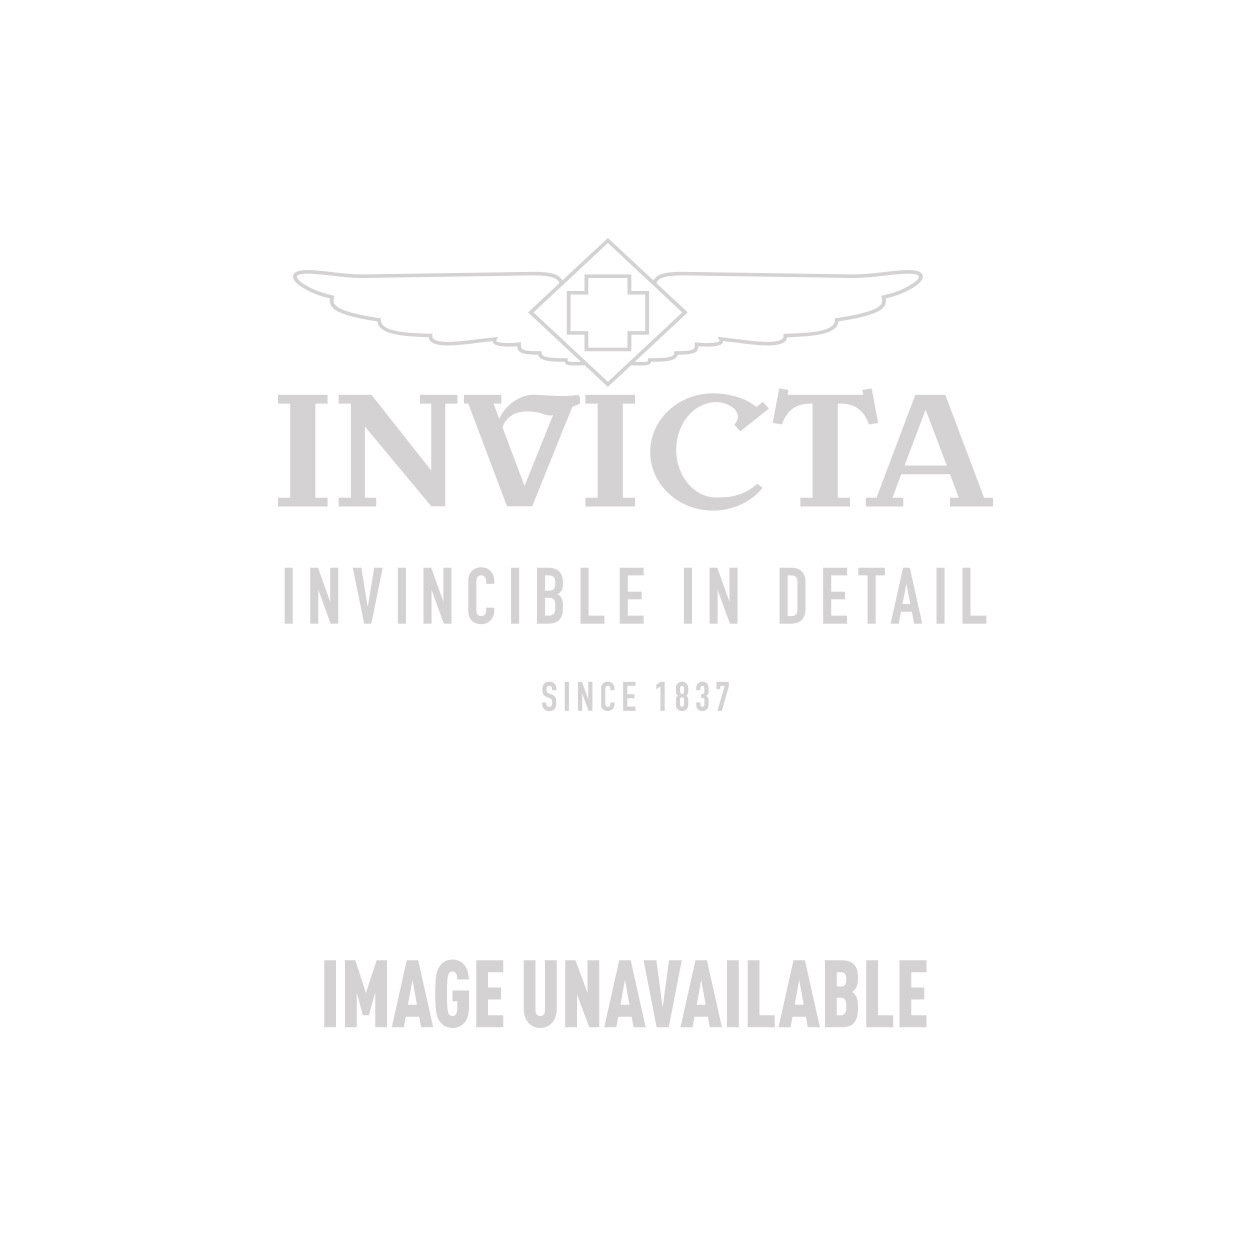 Invicta Wildflower  Quartz Watch - Stainless Steel case Stainless Steel band - Model 17806